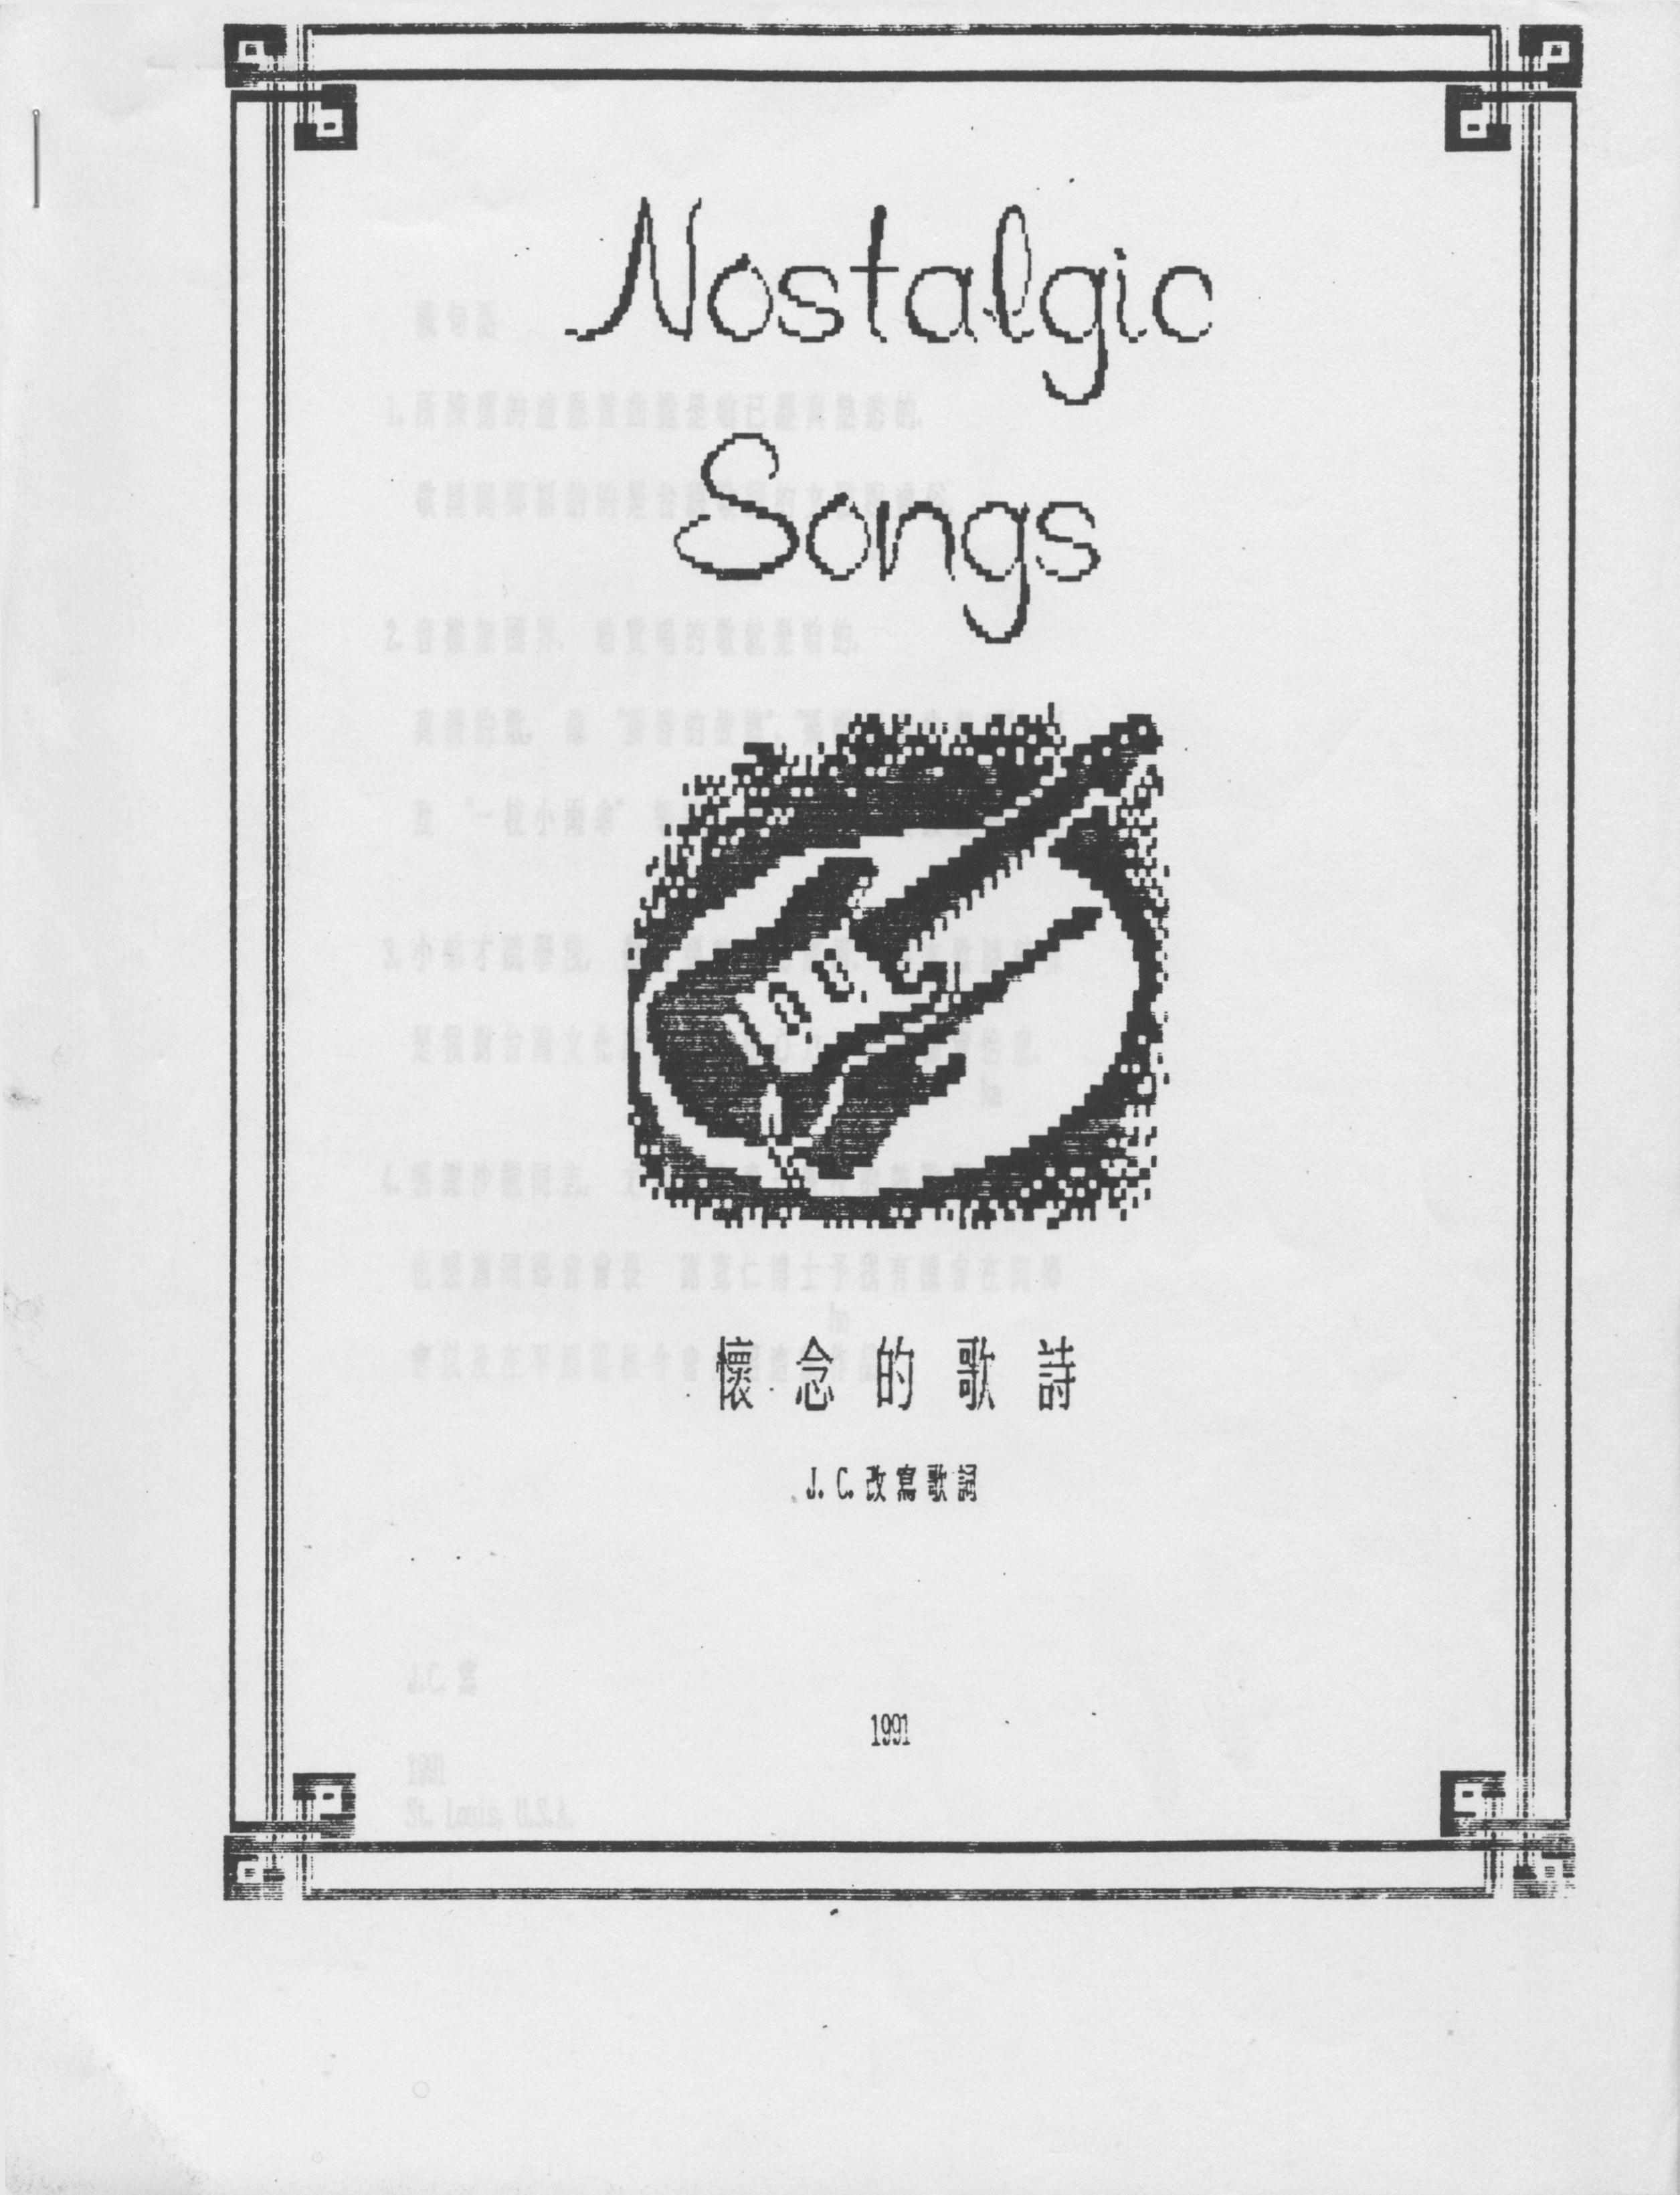 1316. Nostalgic Songs/Anthony Su/1991